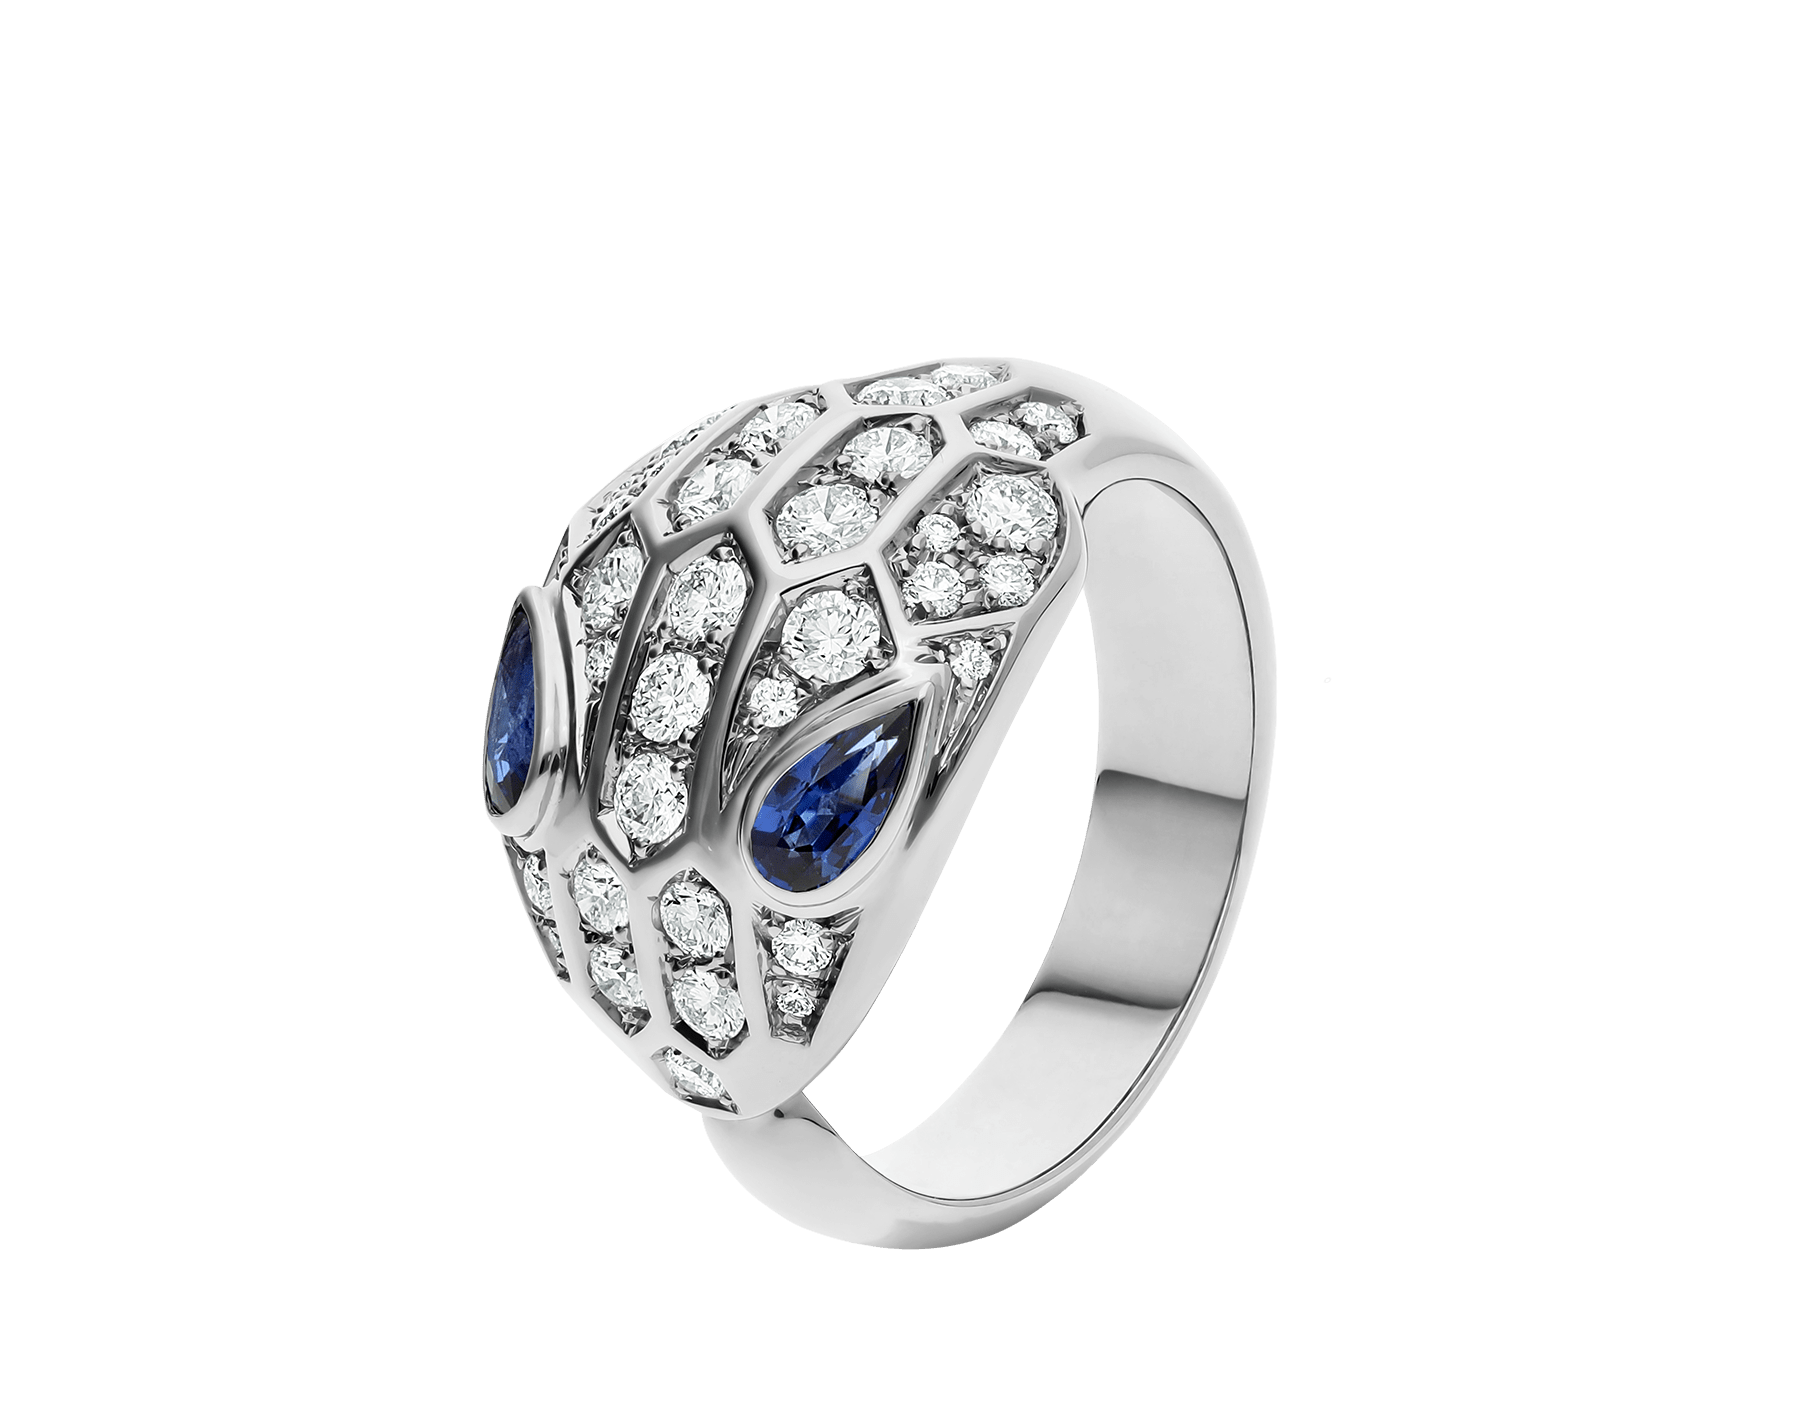 Serpenti ring in 18 kt white gold, set with blue sapphire eyes and pavé diamonds. AN857879 image 1